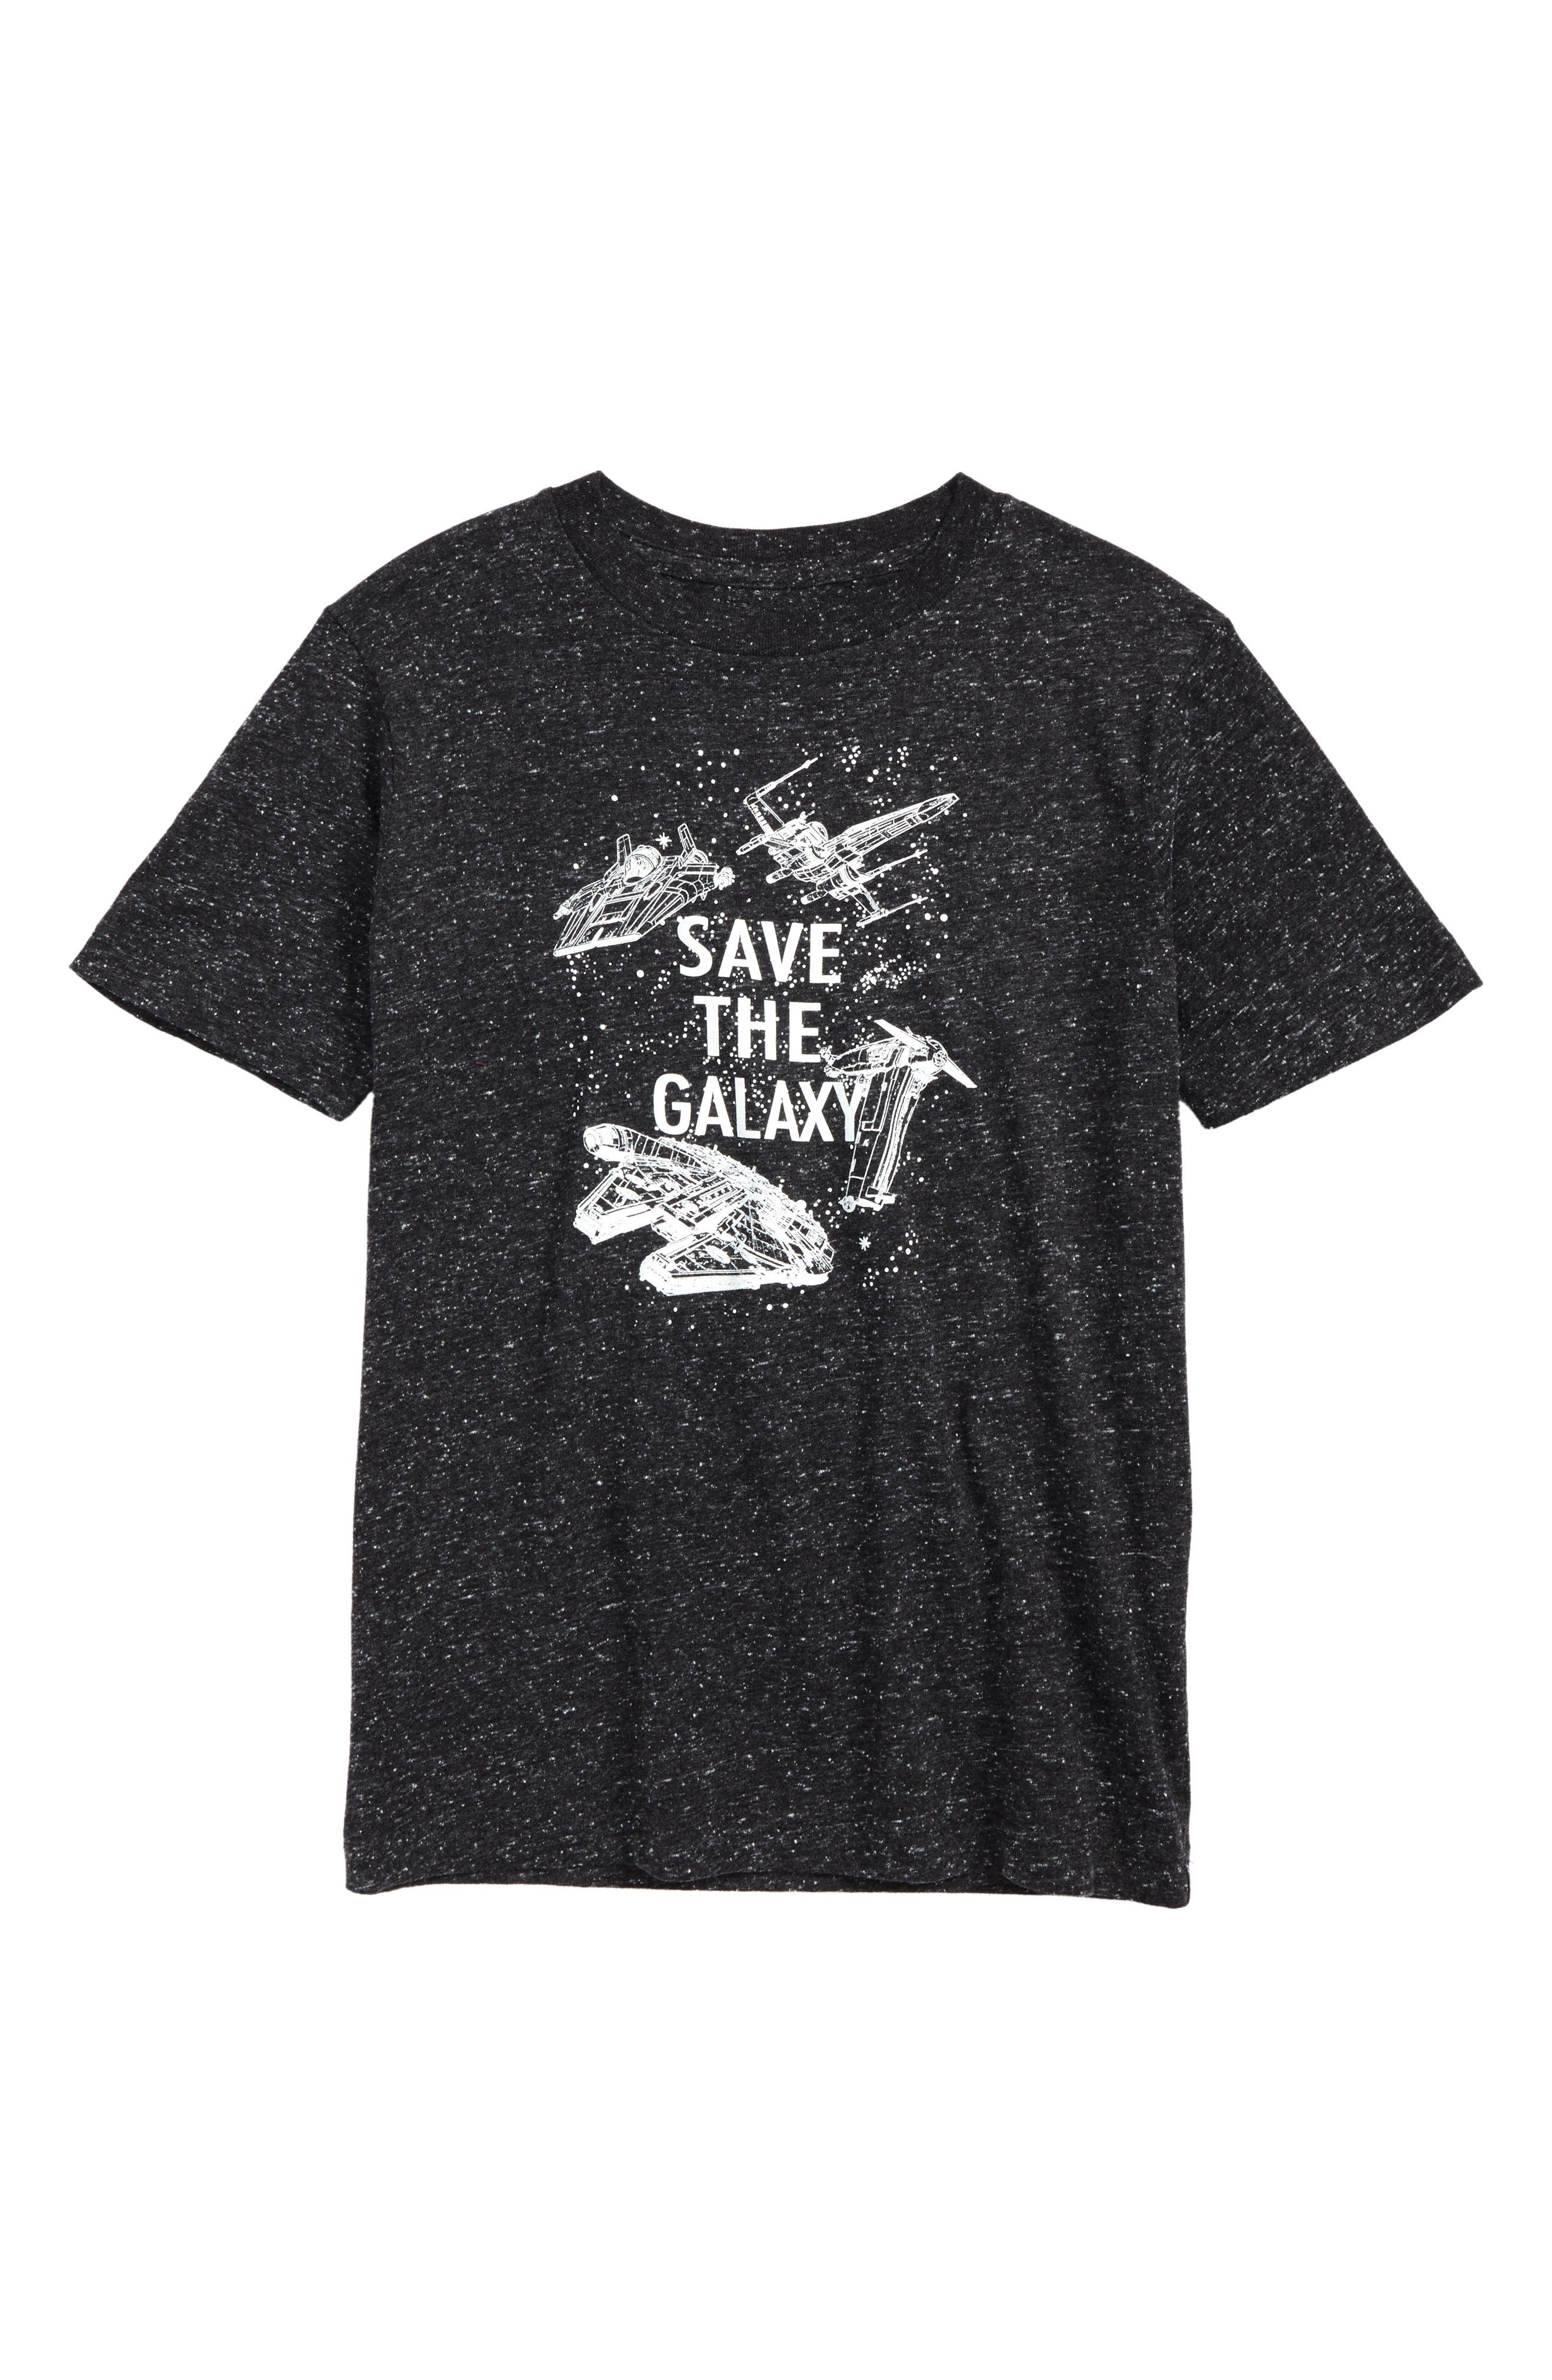 Star Wars - Save the Galaxy Glow in the Dark T-Shirt,                             Main thumbnail 1, color,                             001